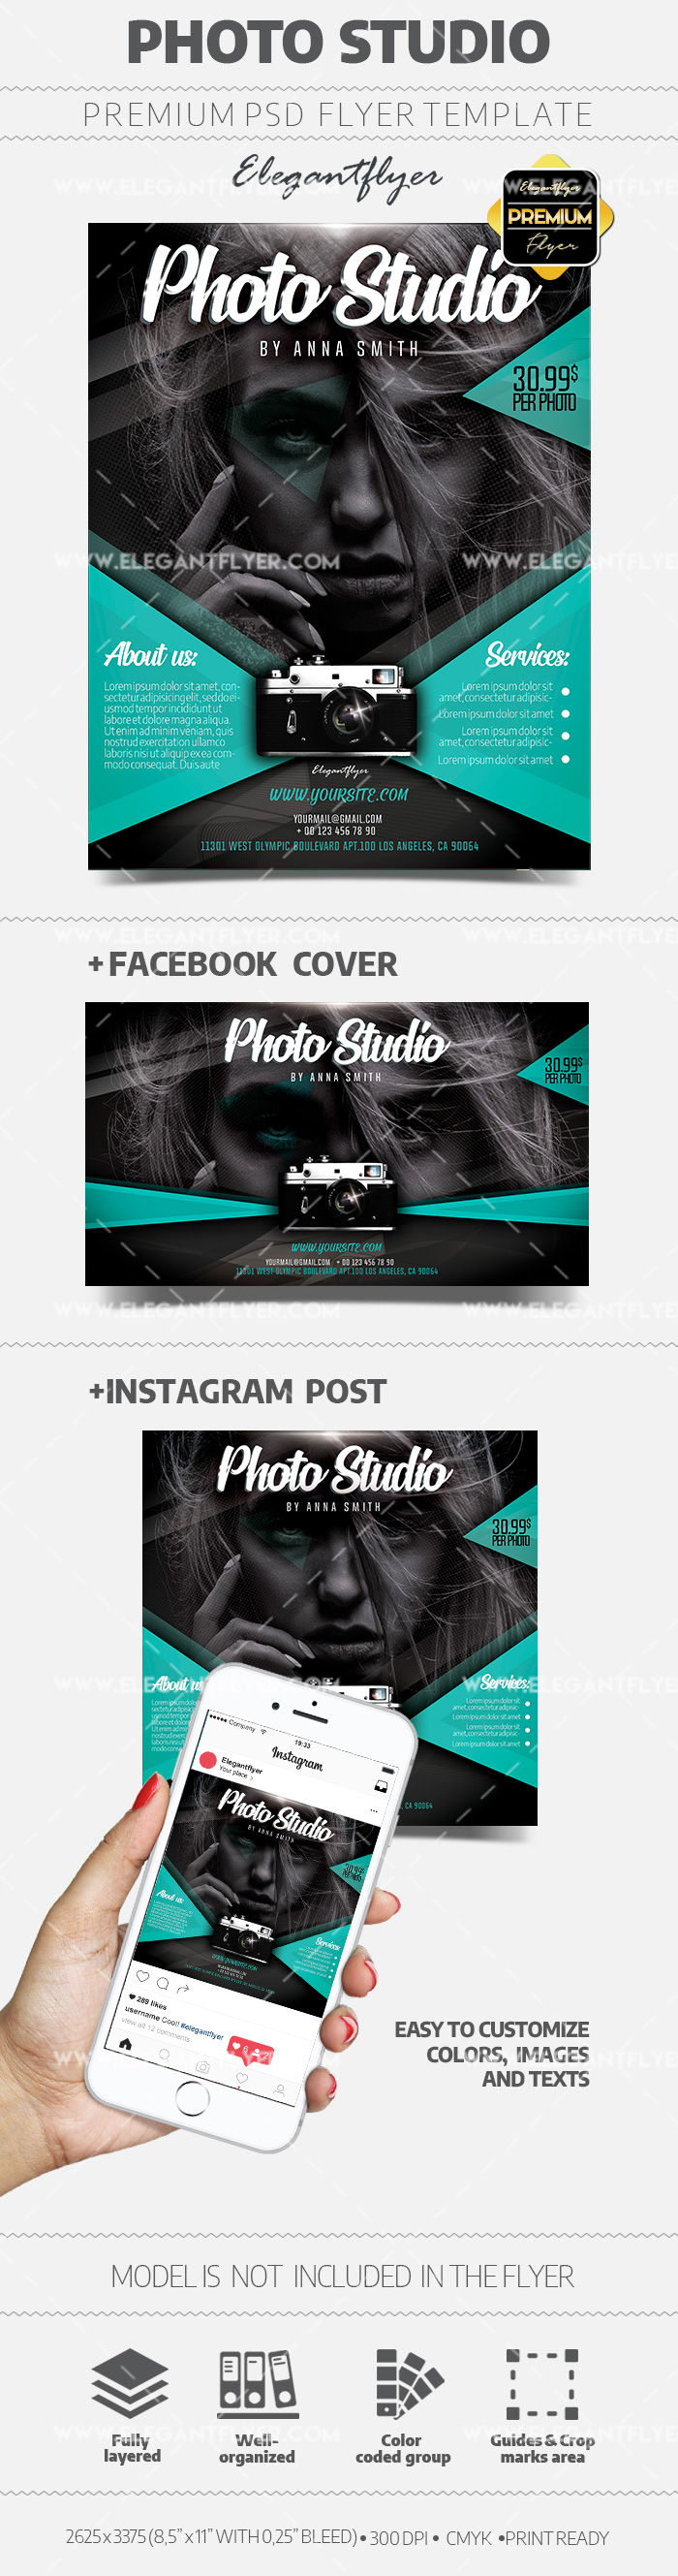 Photo Studio – PSD Flyer Template + Facebook Cover + Instagram Post